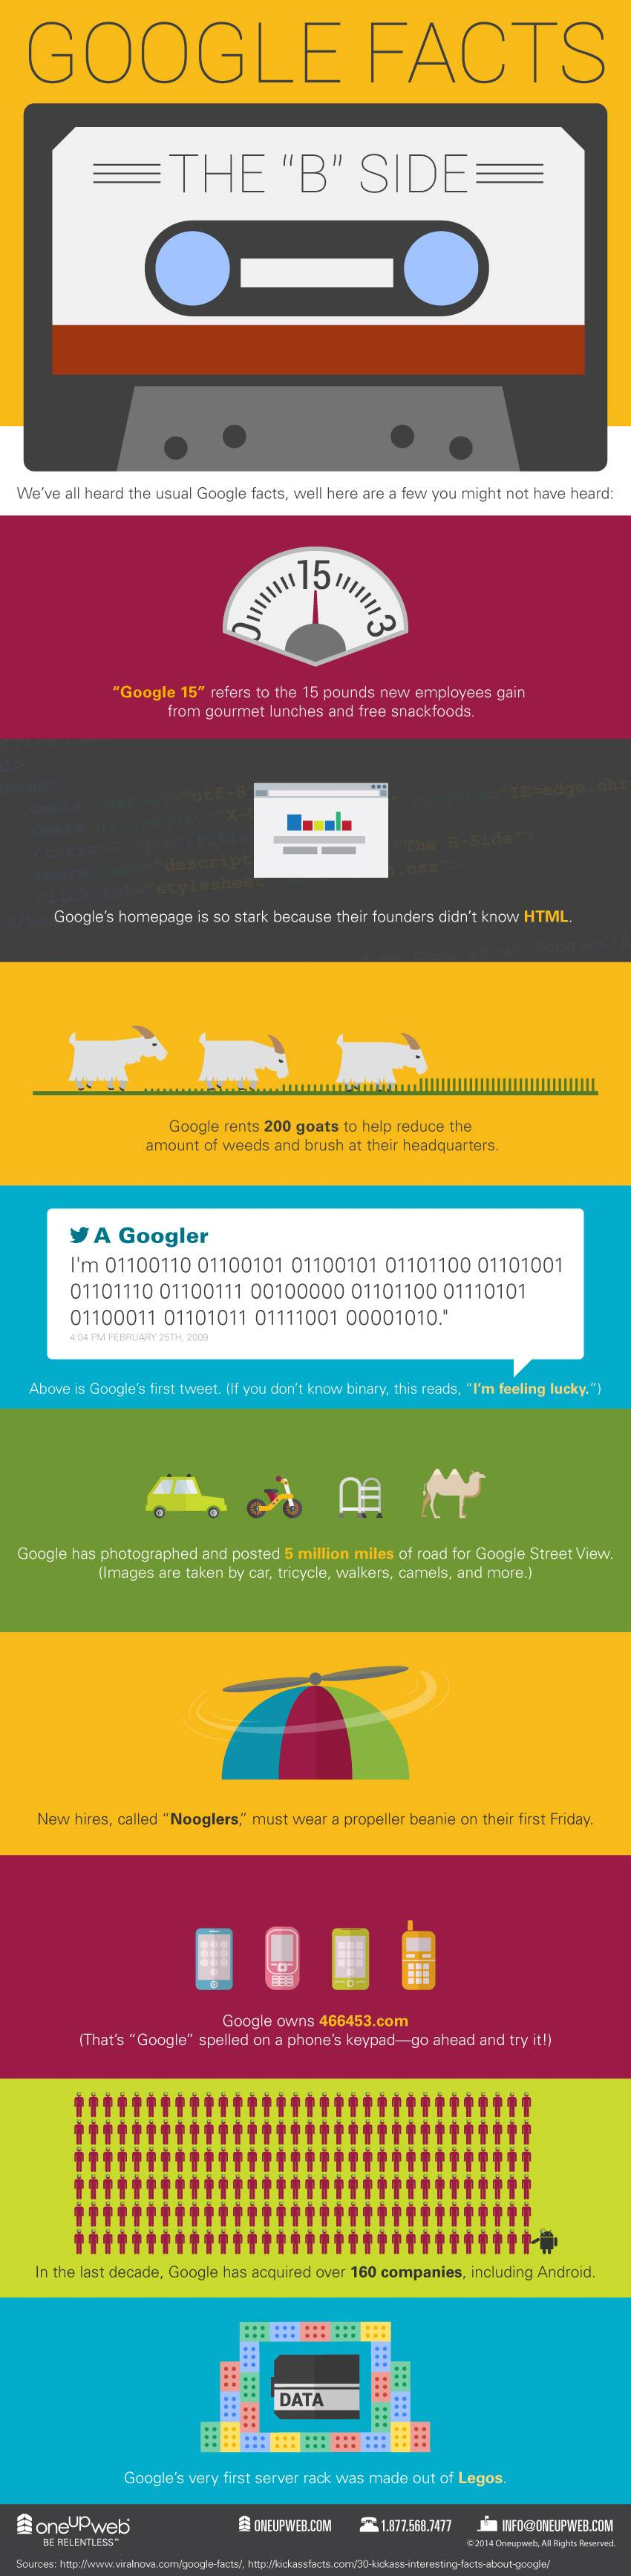 Oneupweb presents a mistabe infographic of Google Facts